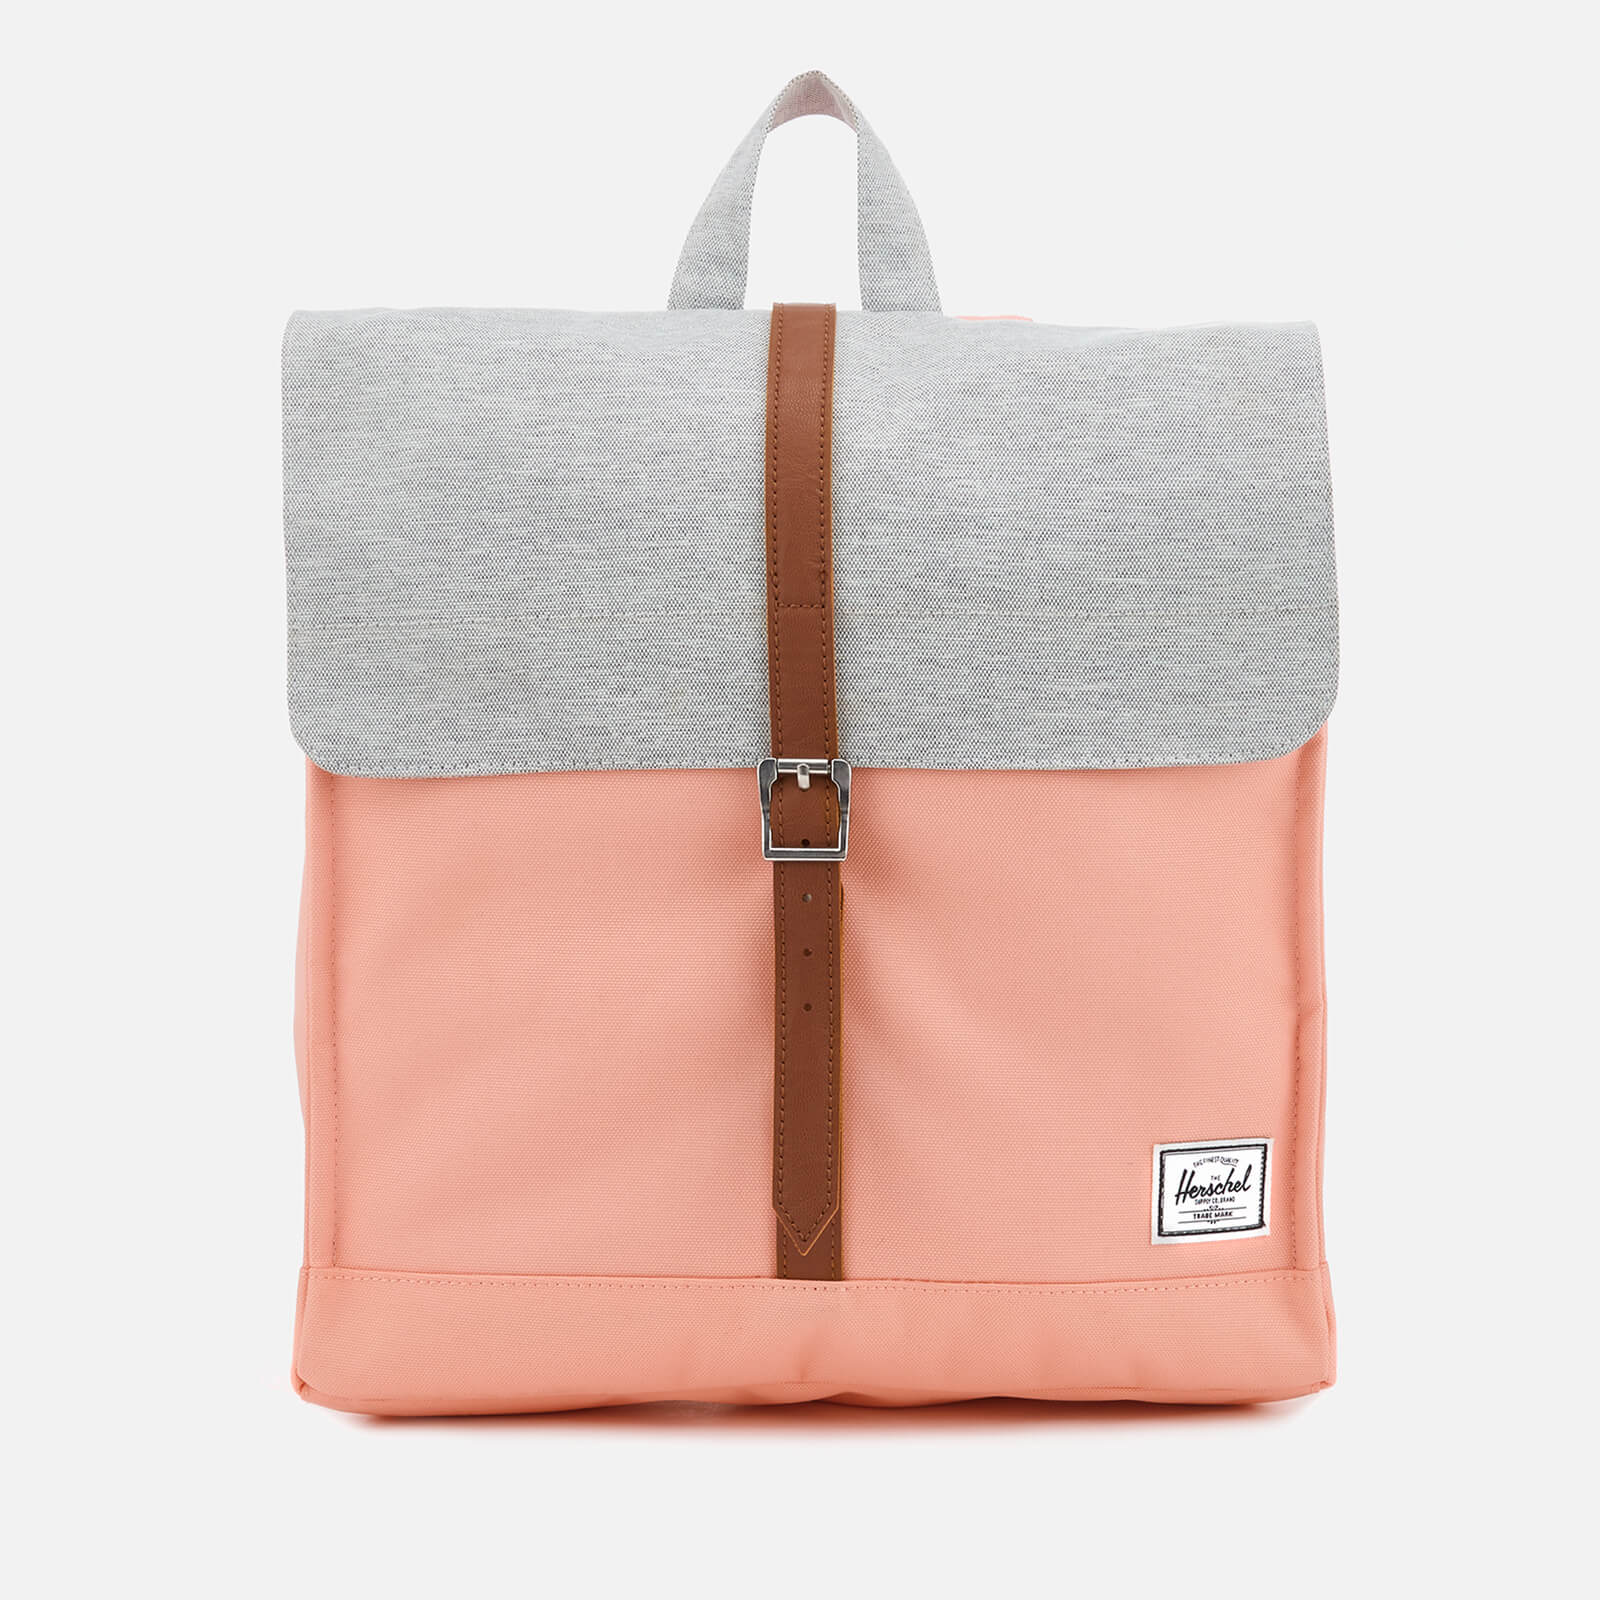 b0149a23770 Herschel Supply Co. Women s City Mid-Volume Backpack - Peach Light Grey  Crosshatch Tan Synthetic Leather - Free UK Delivery over £50